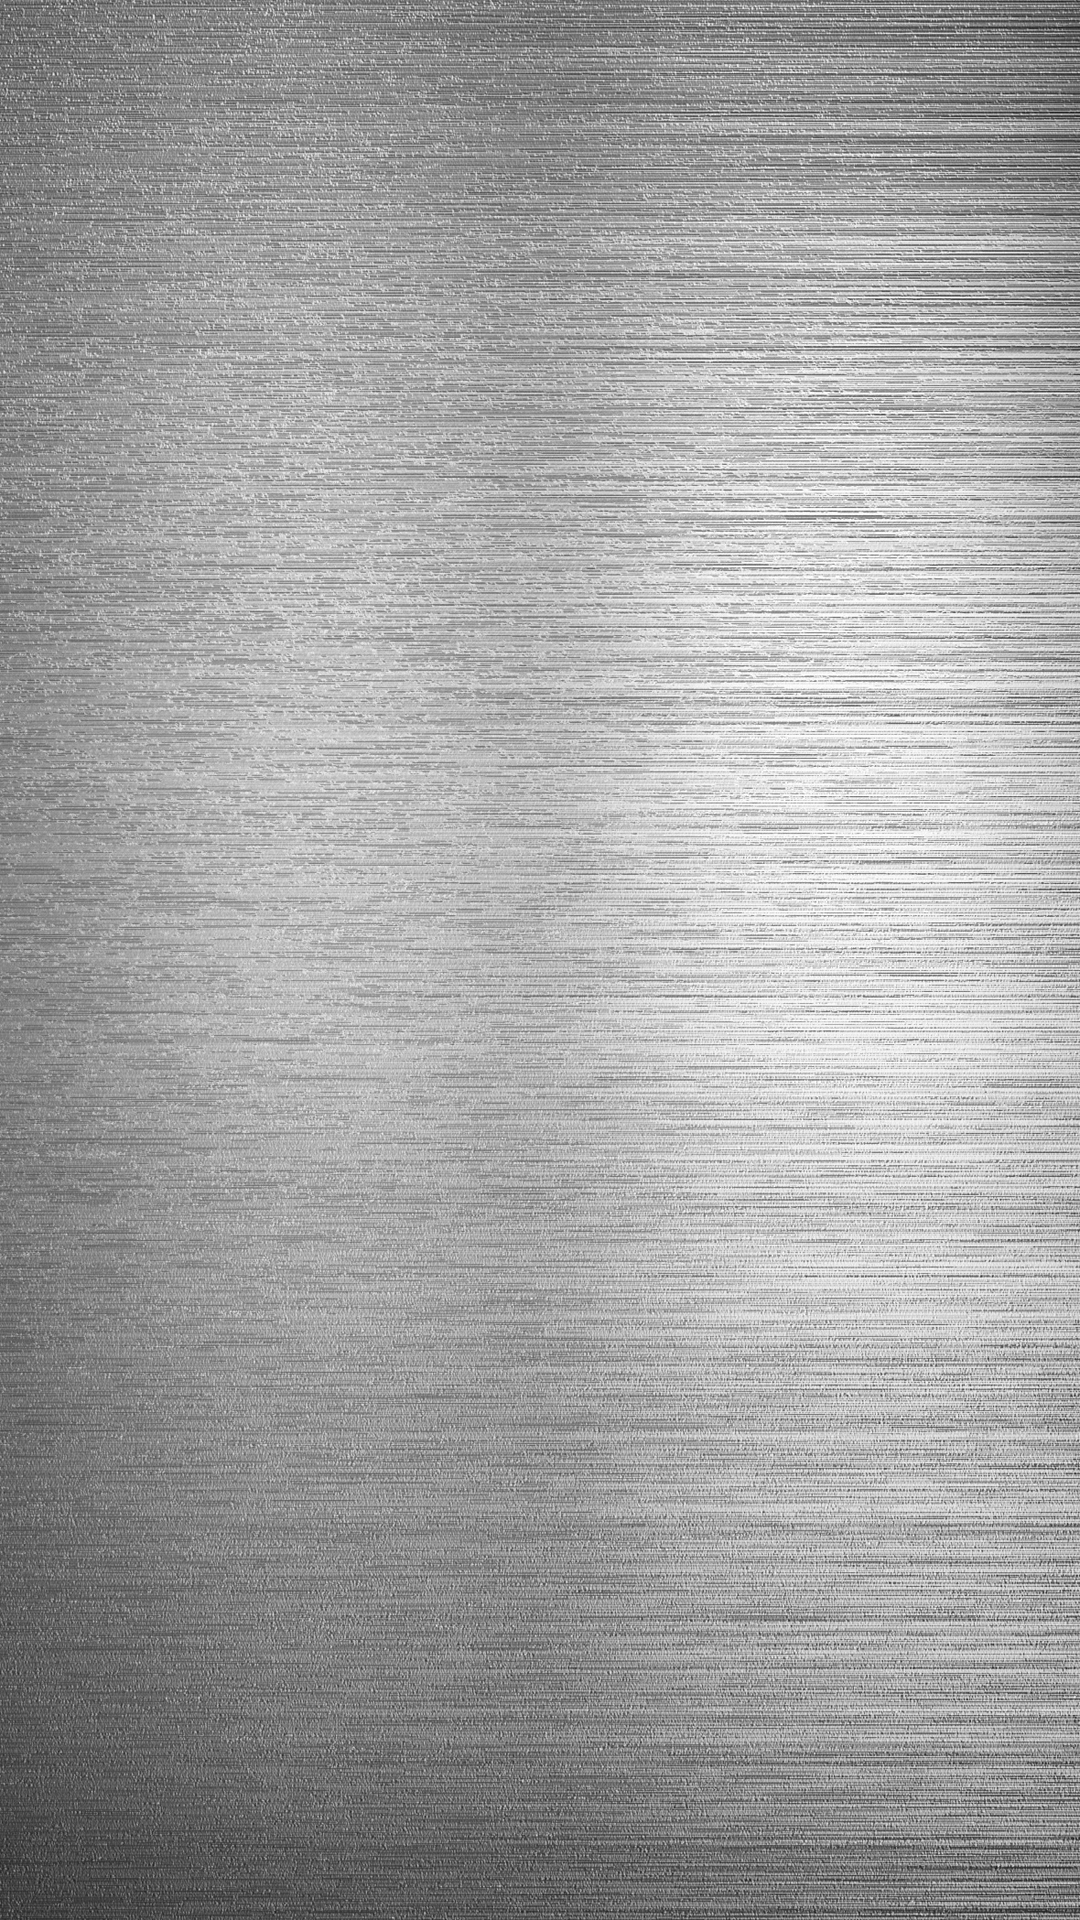 Metal texture htc one wallpaper